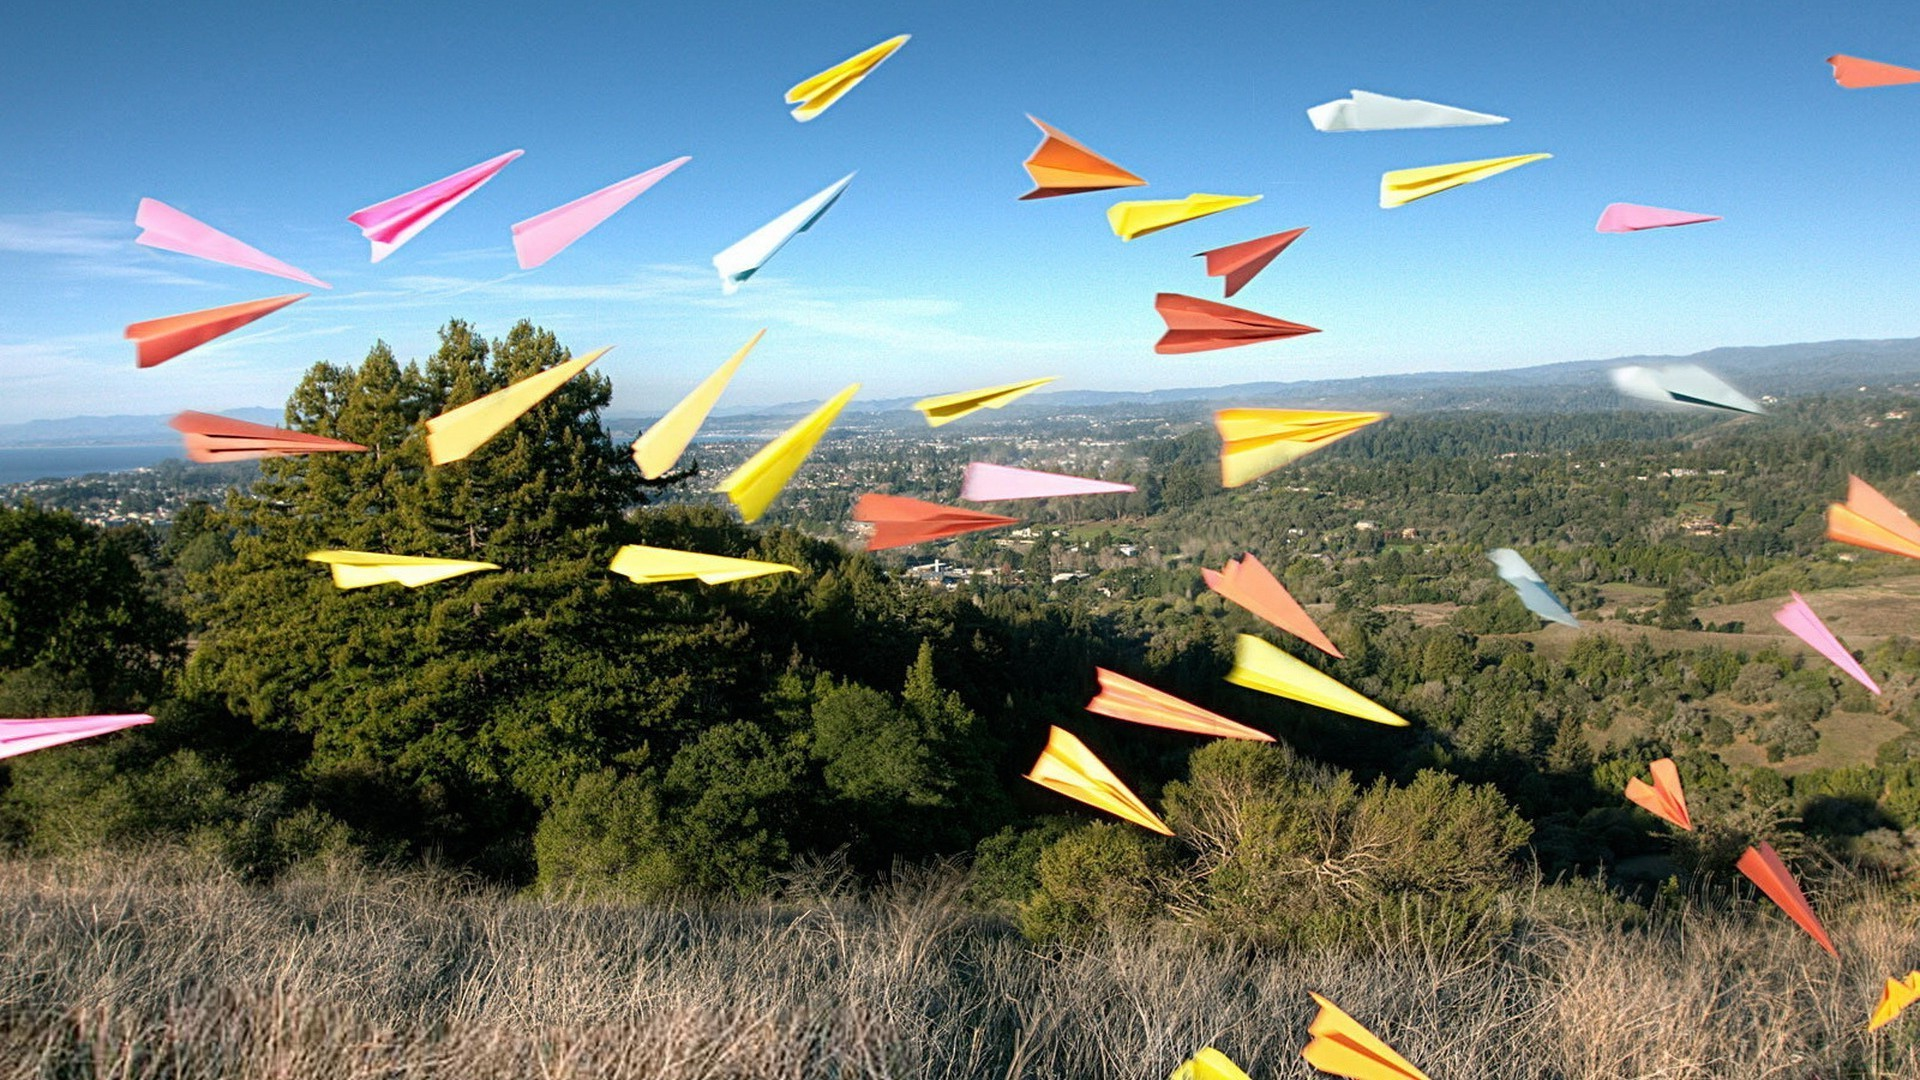 Paper Airplane picture image